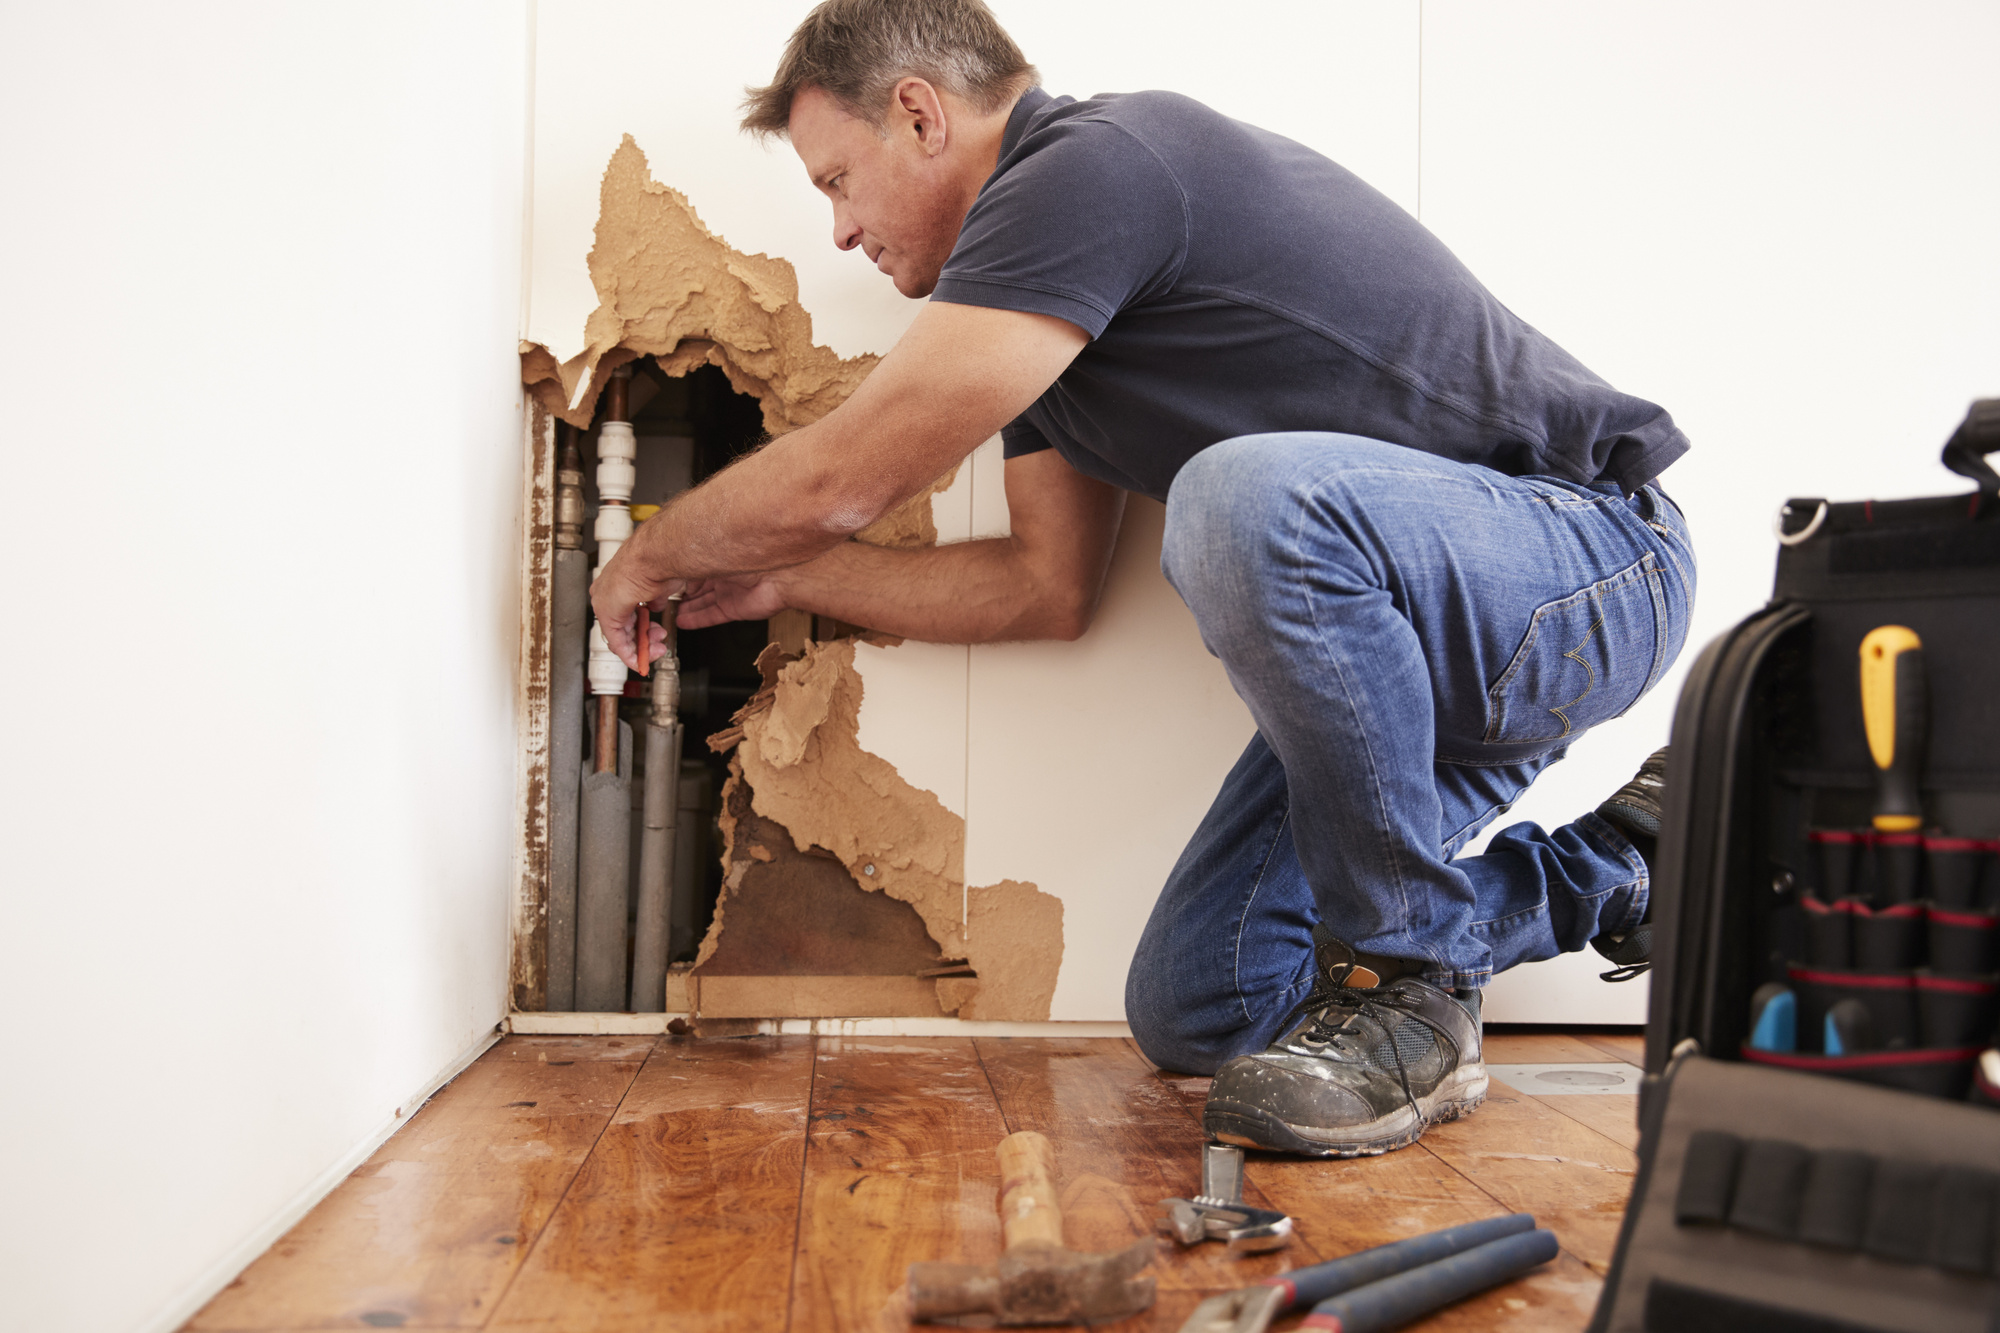 thumbnail for What to Expect During the Home Water Damage Restoration Process